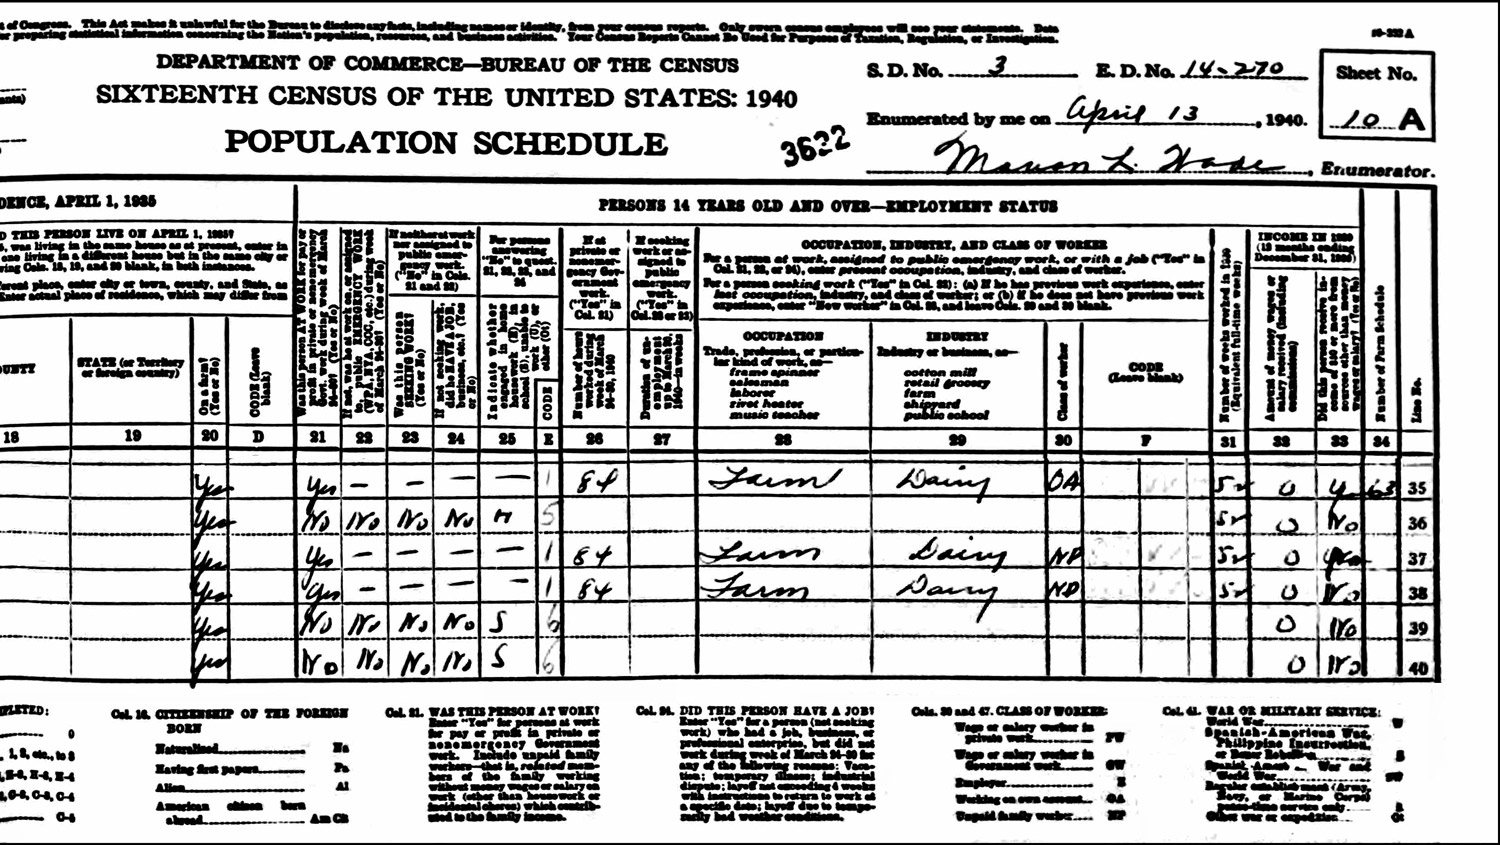 1940 US Federal Census Record for the Frank Niedzialkoski Household (Page A Right)